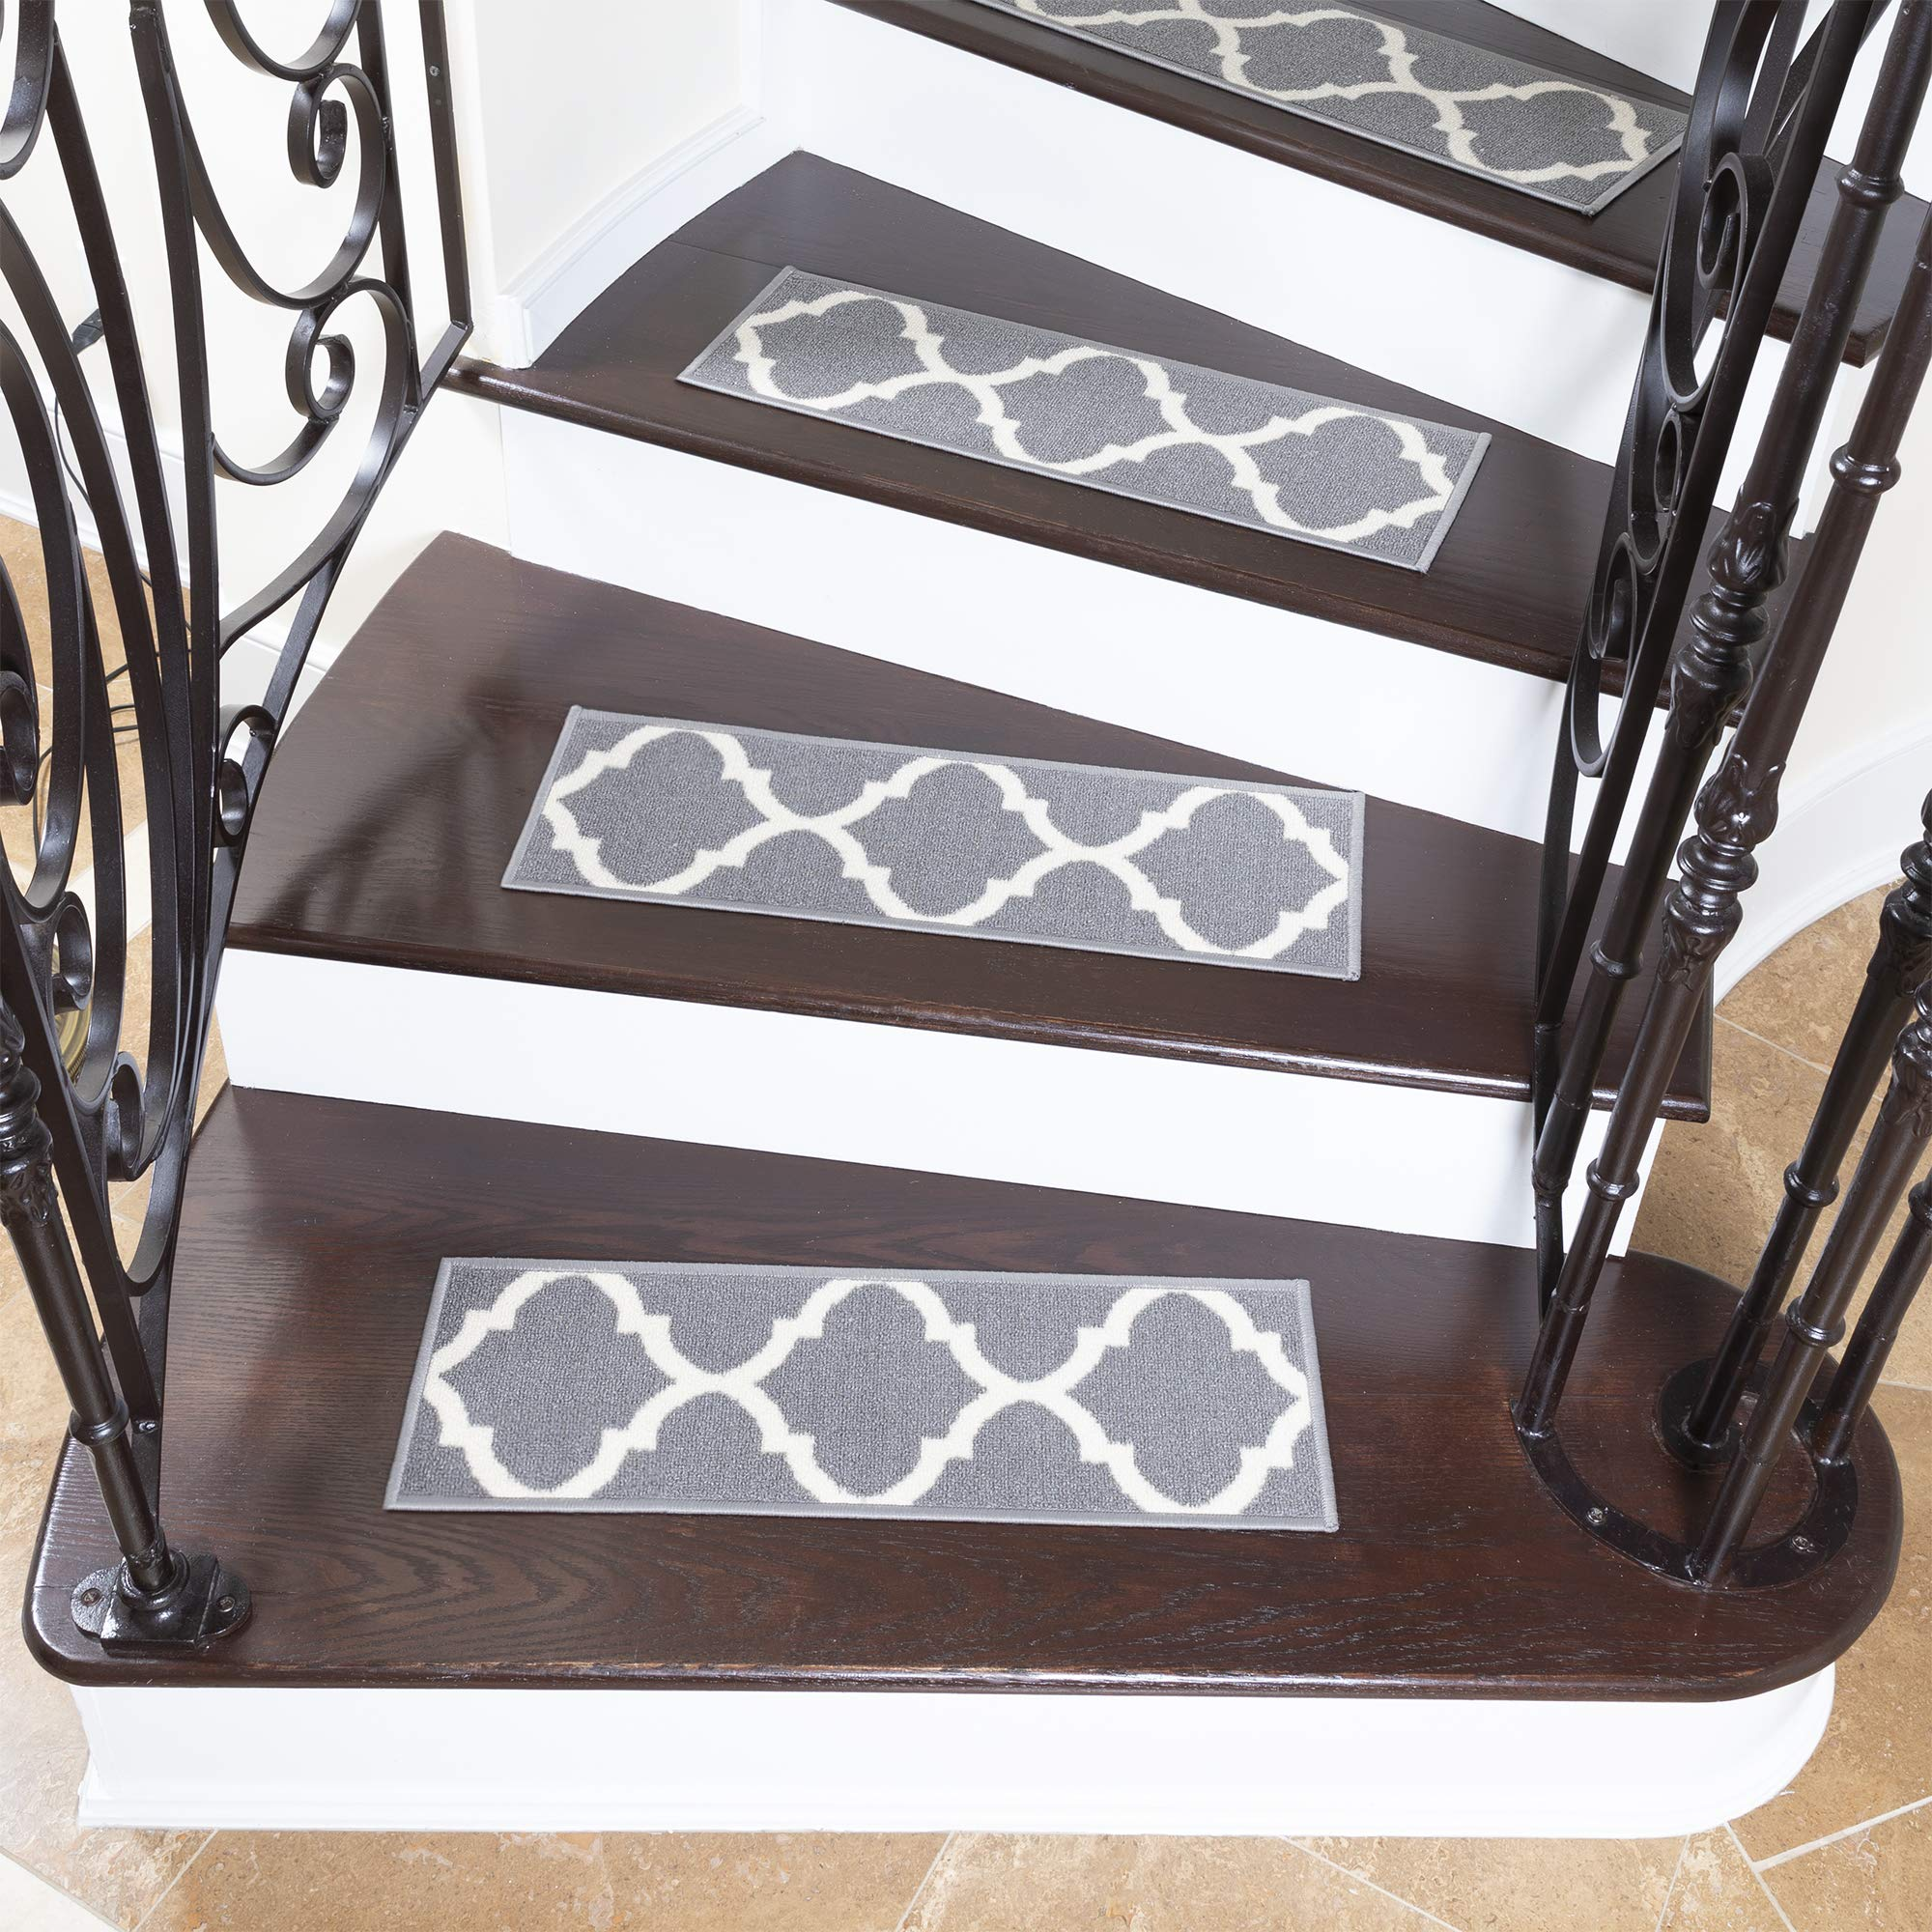 Ottomanson Ottohome Collection Stair Tread, 8.5'' X 26'' Pack of 7, Gray by Ottomanson